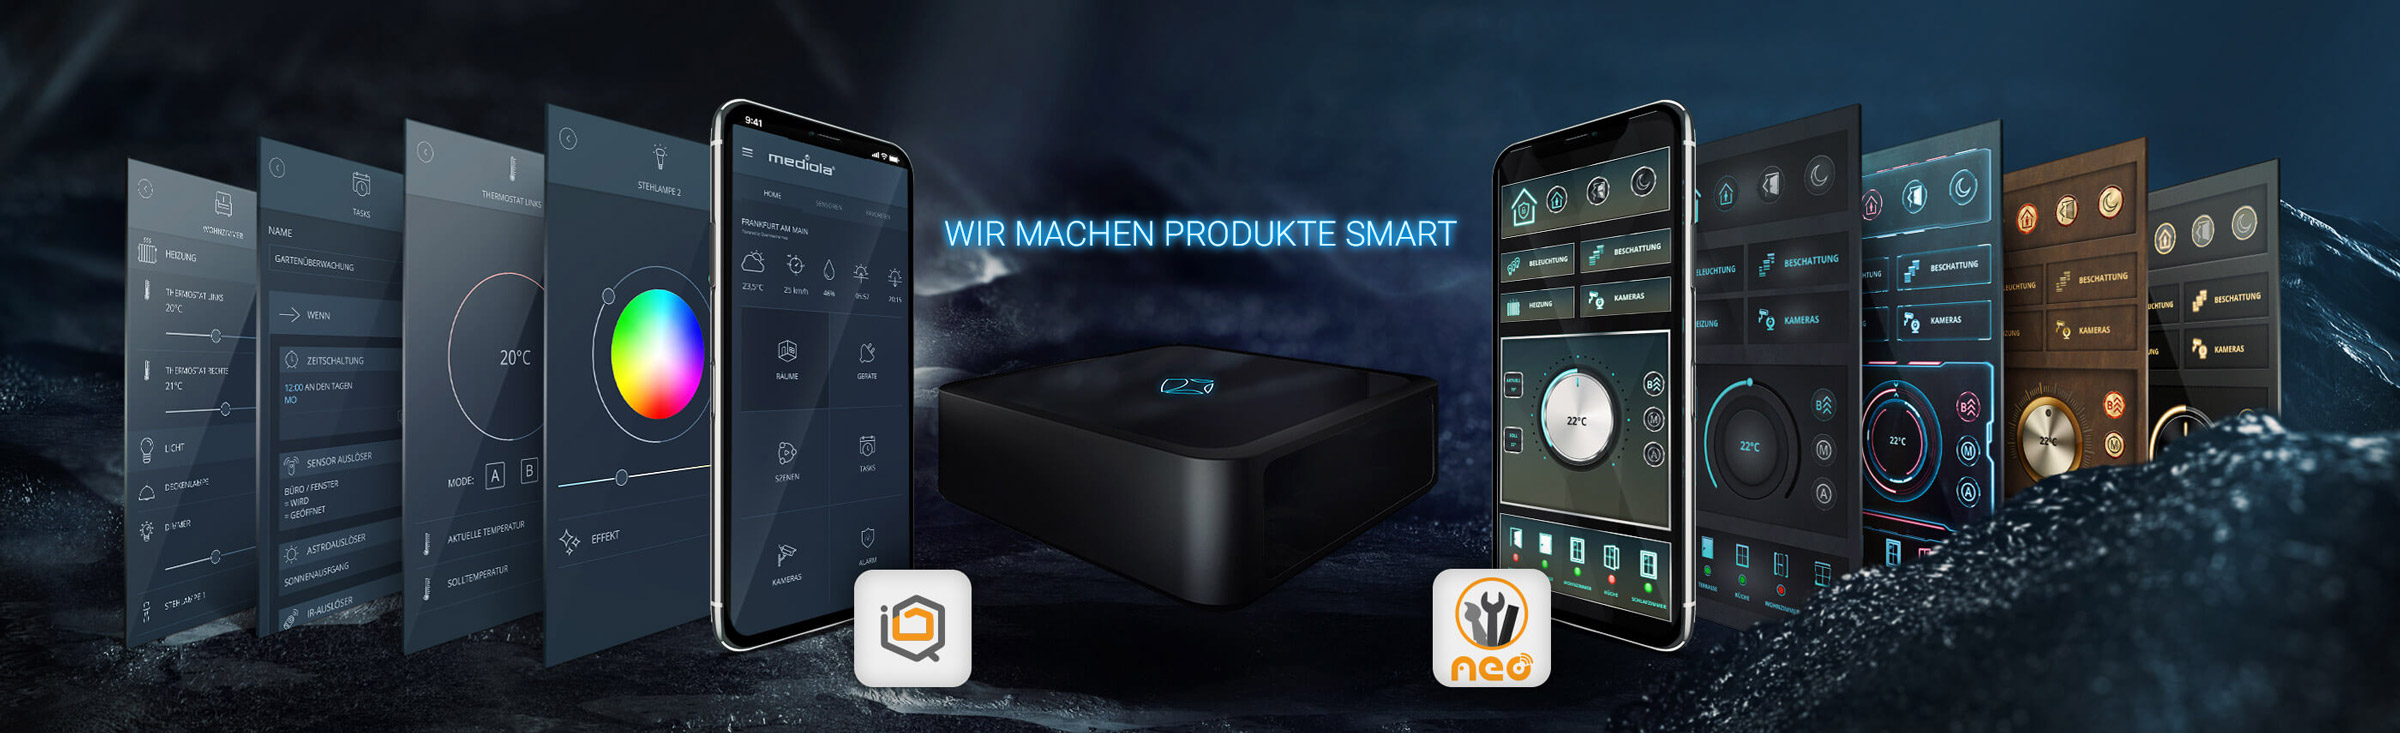 Smart Home mit Mediola connected living AG - Produkte - Gateway und Softwares